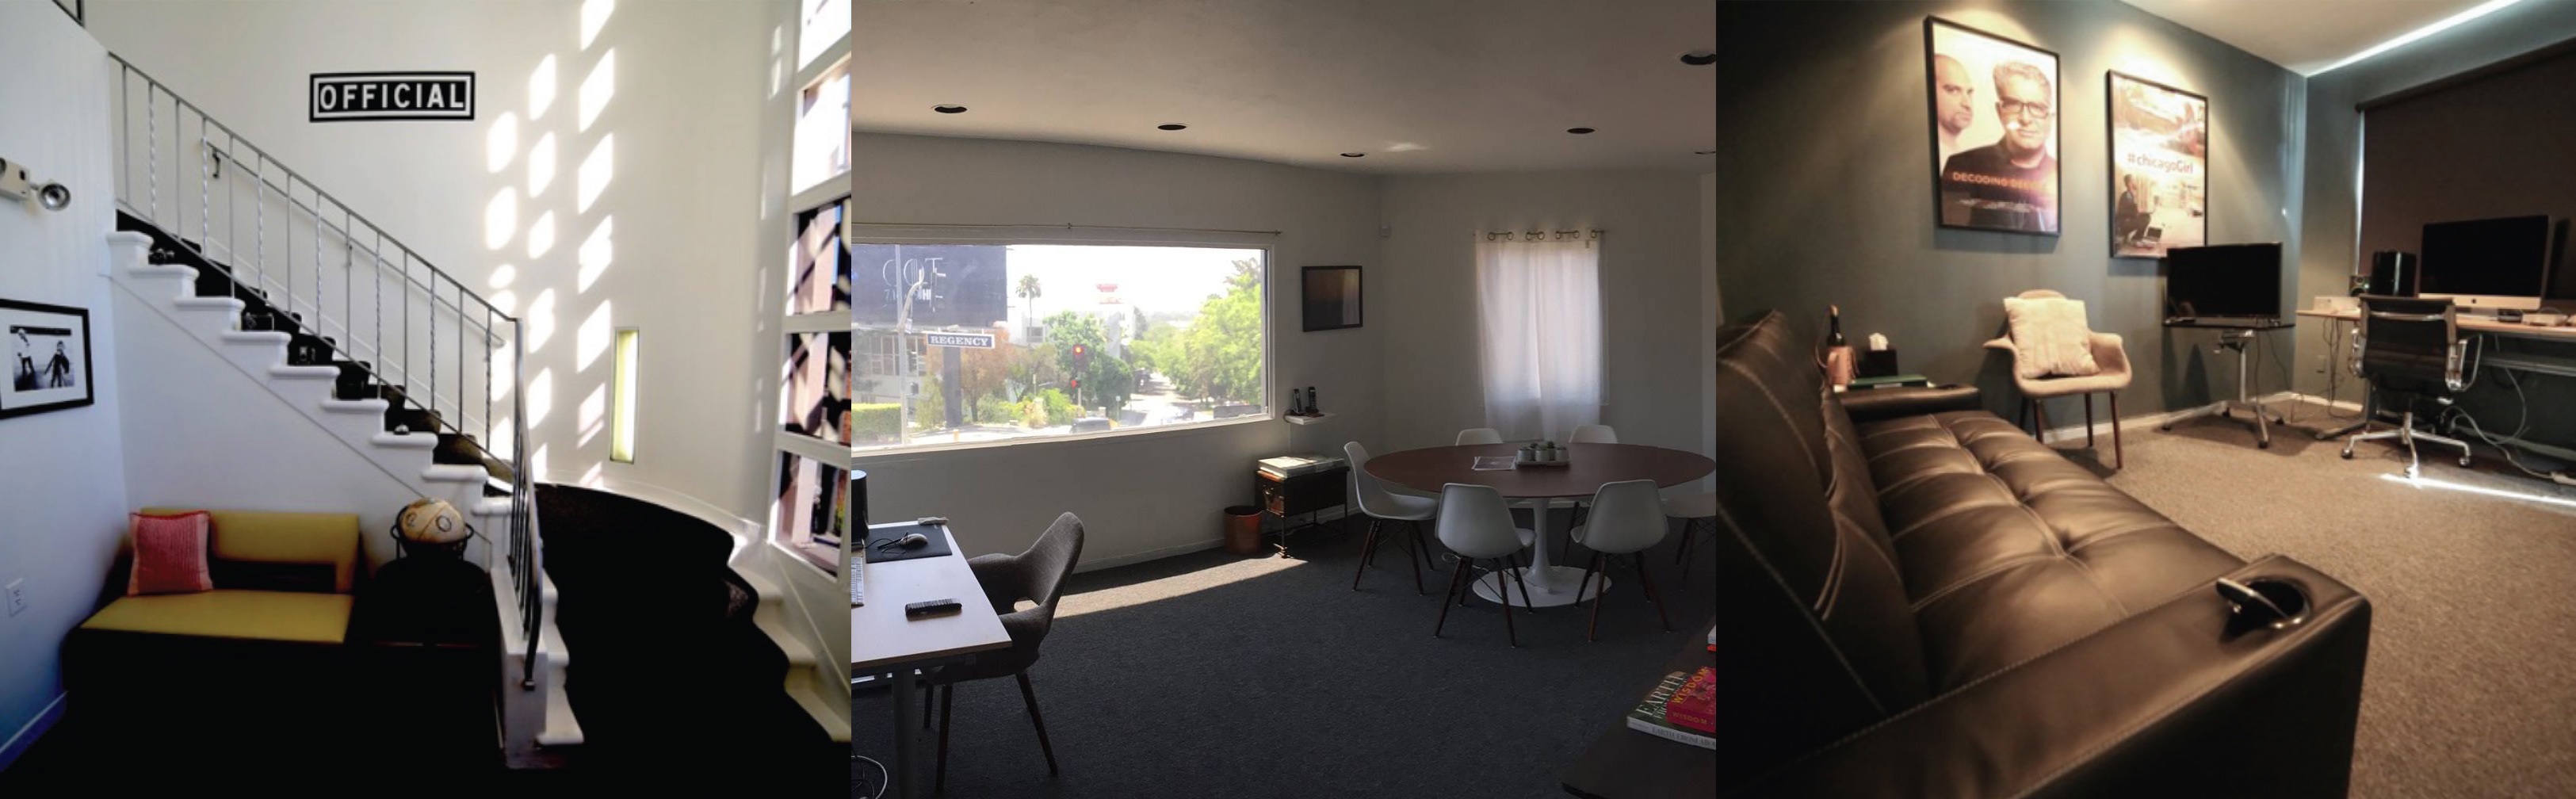 Interior Work and Meeting Space